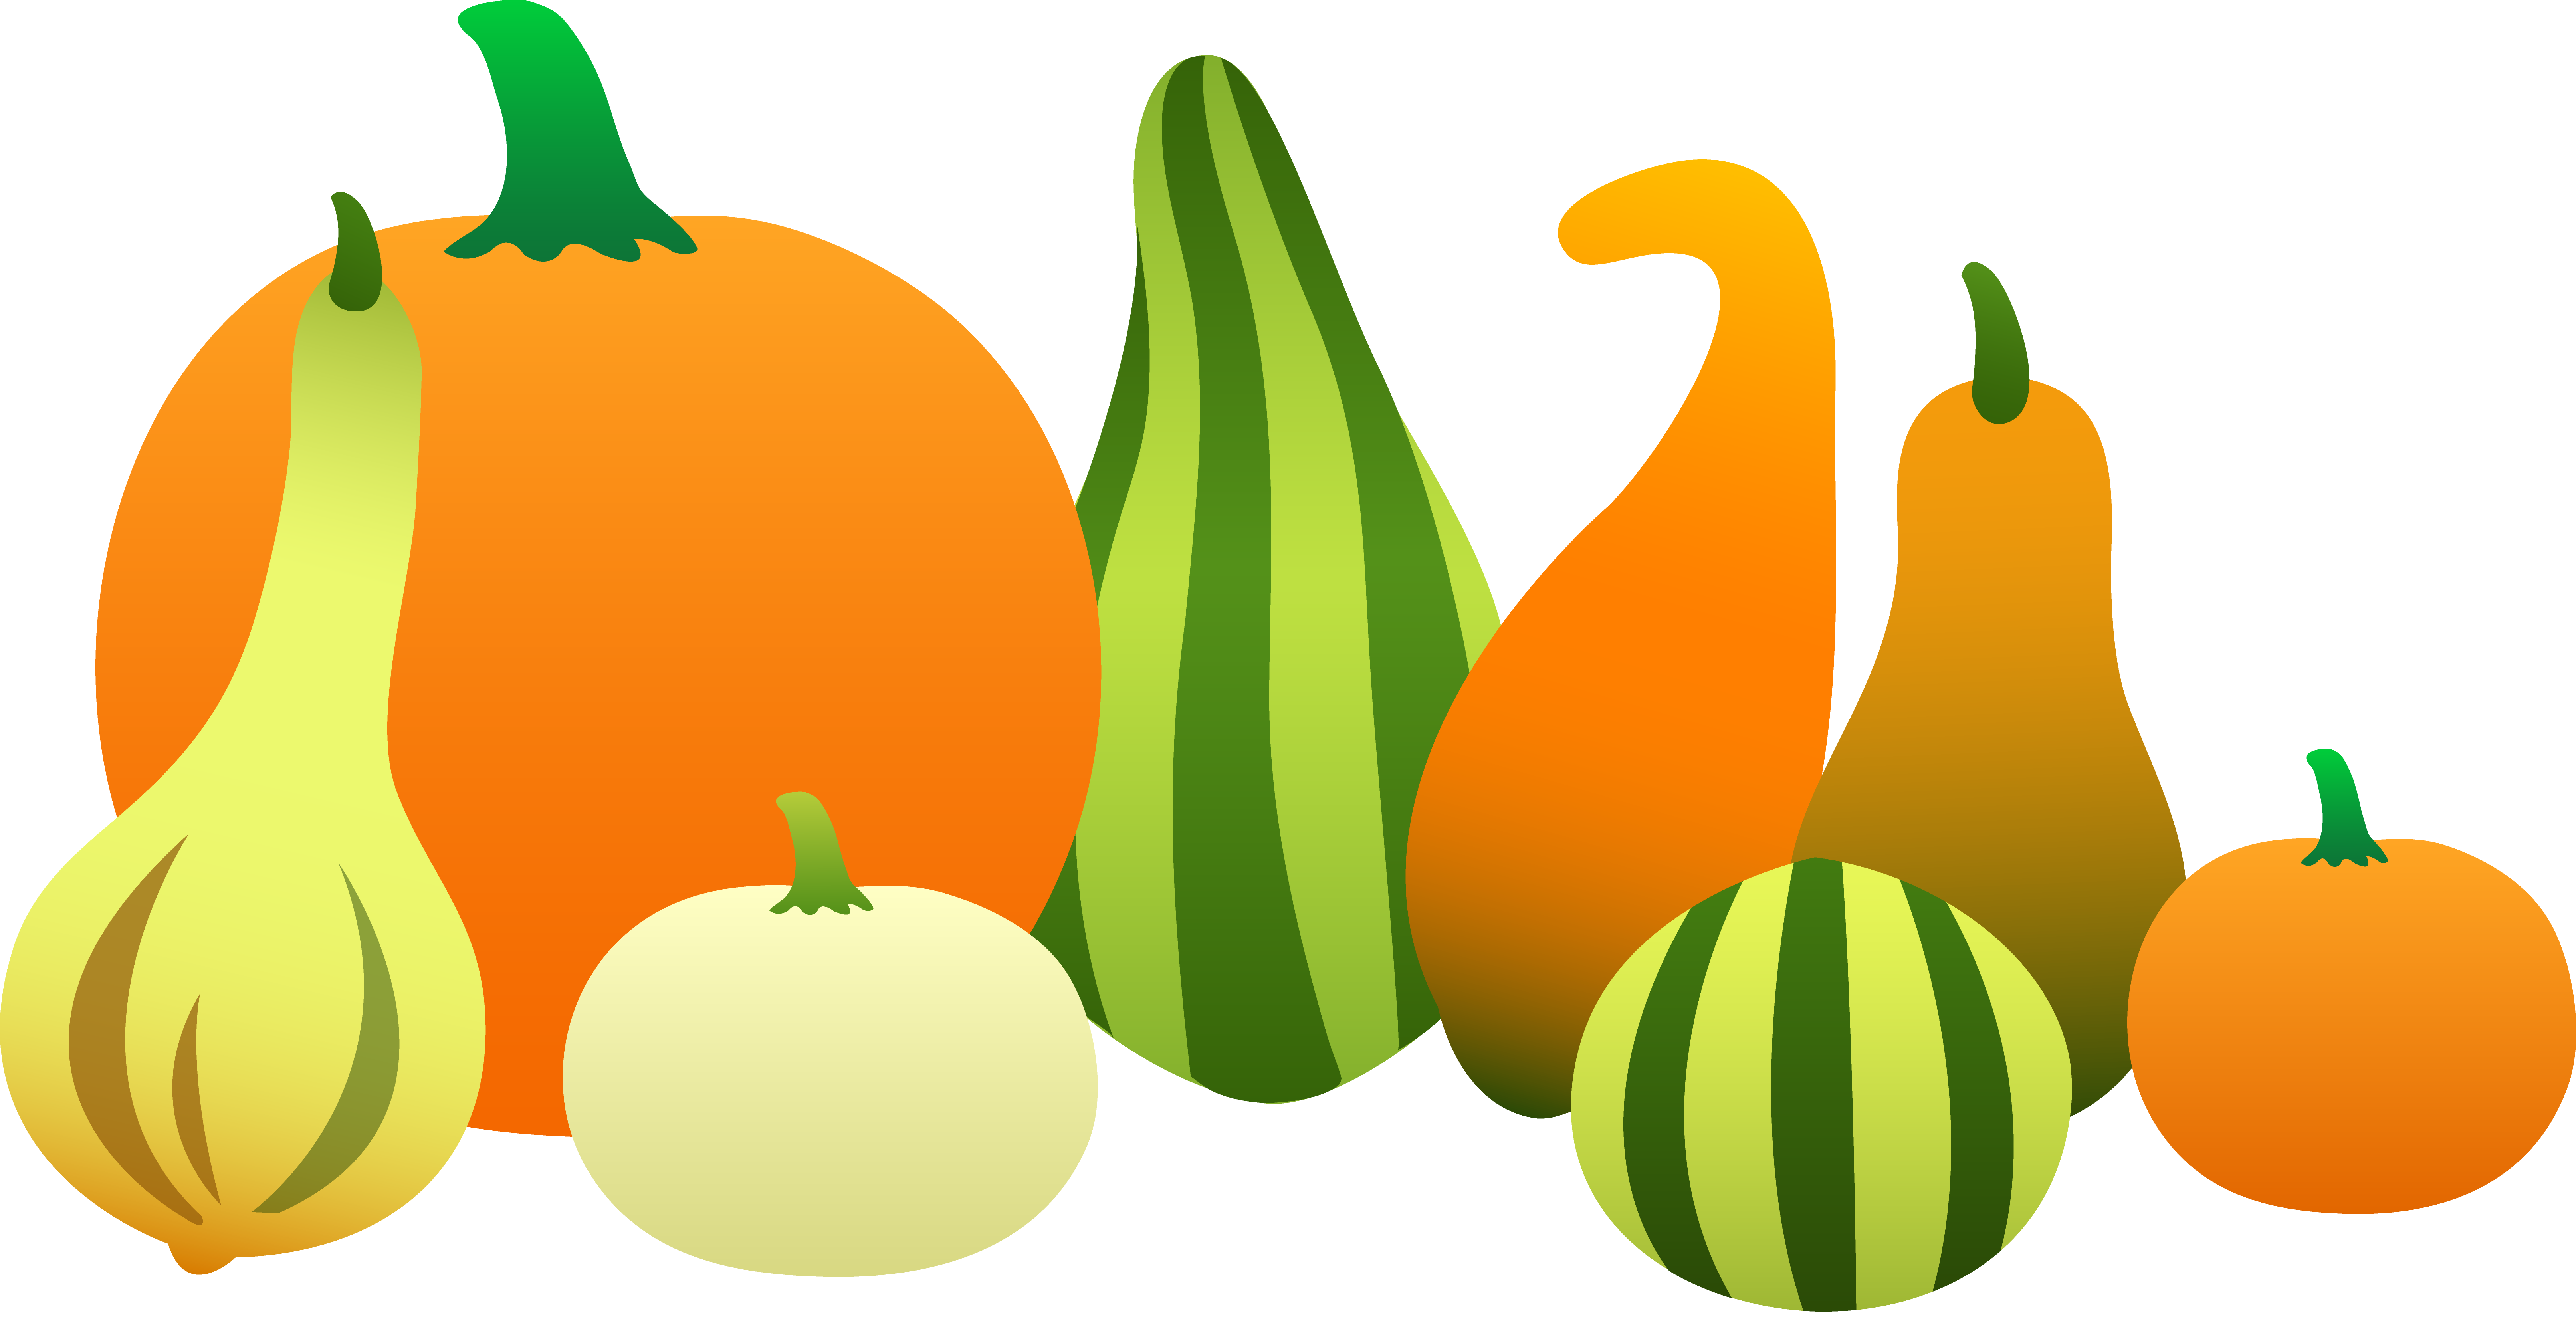 Food at getdrawings com. Nutrition clipart thanksgiving